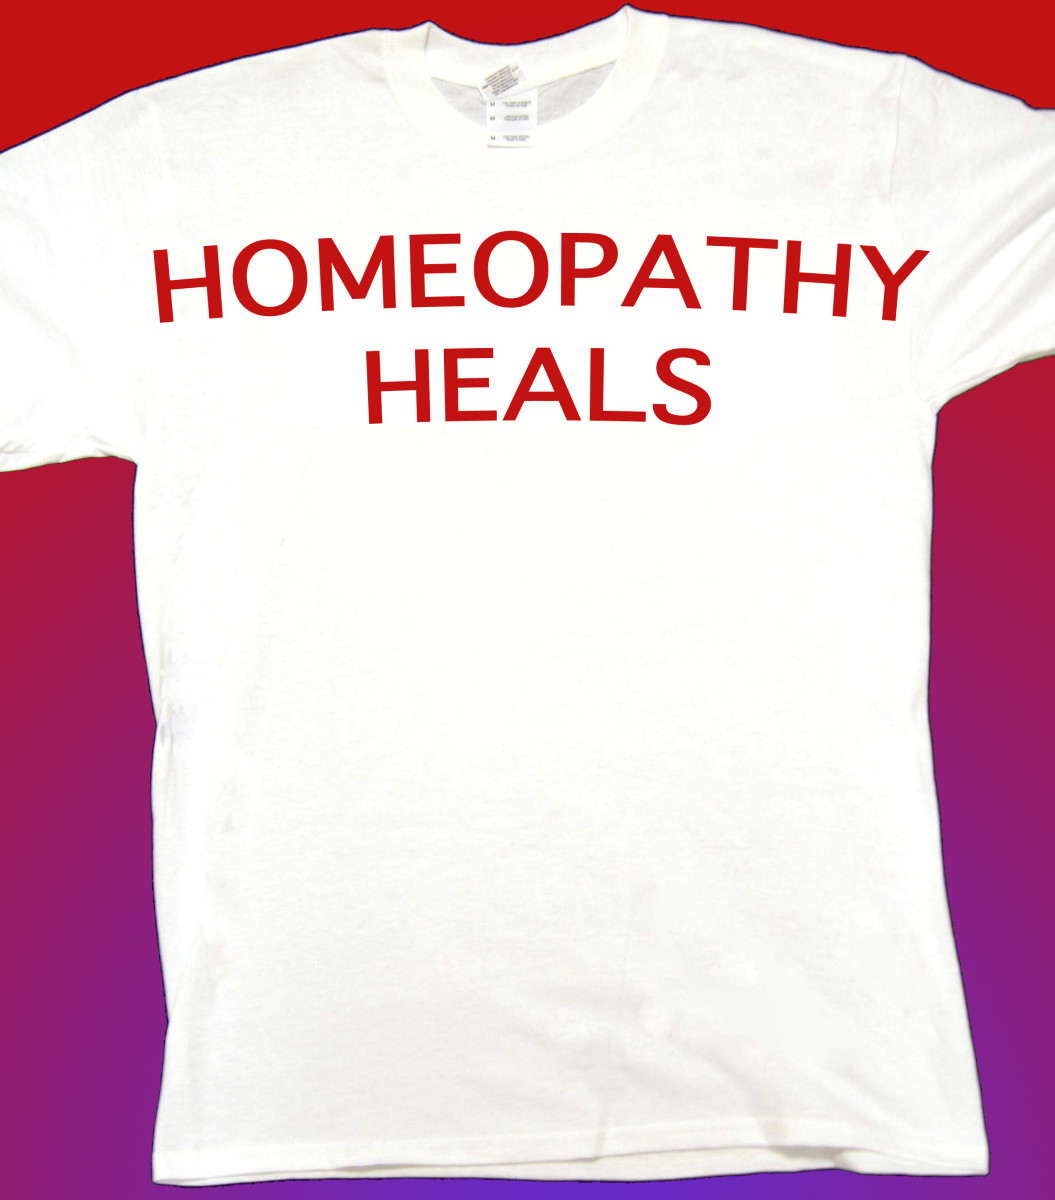 HOMEOPATHY | Free Mottos Slogans Tell How Homeopathic Medicine Can Be Safe & Effective Drug